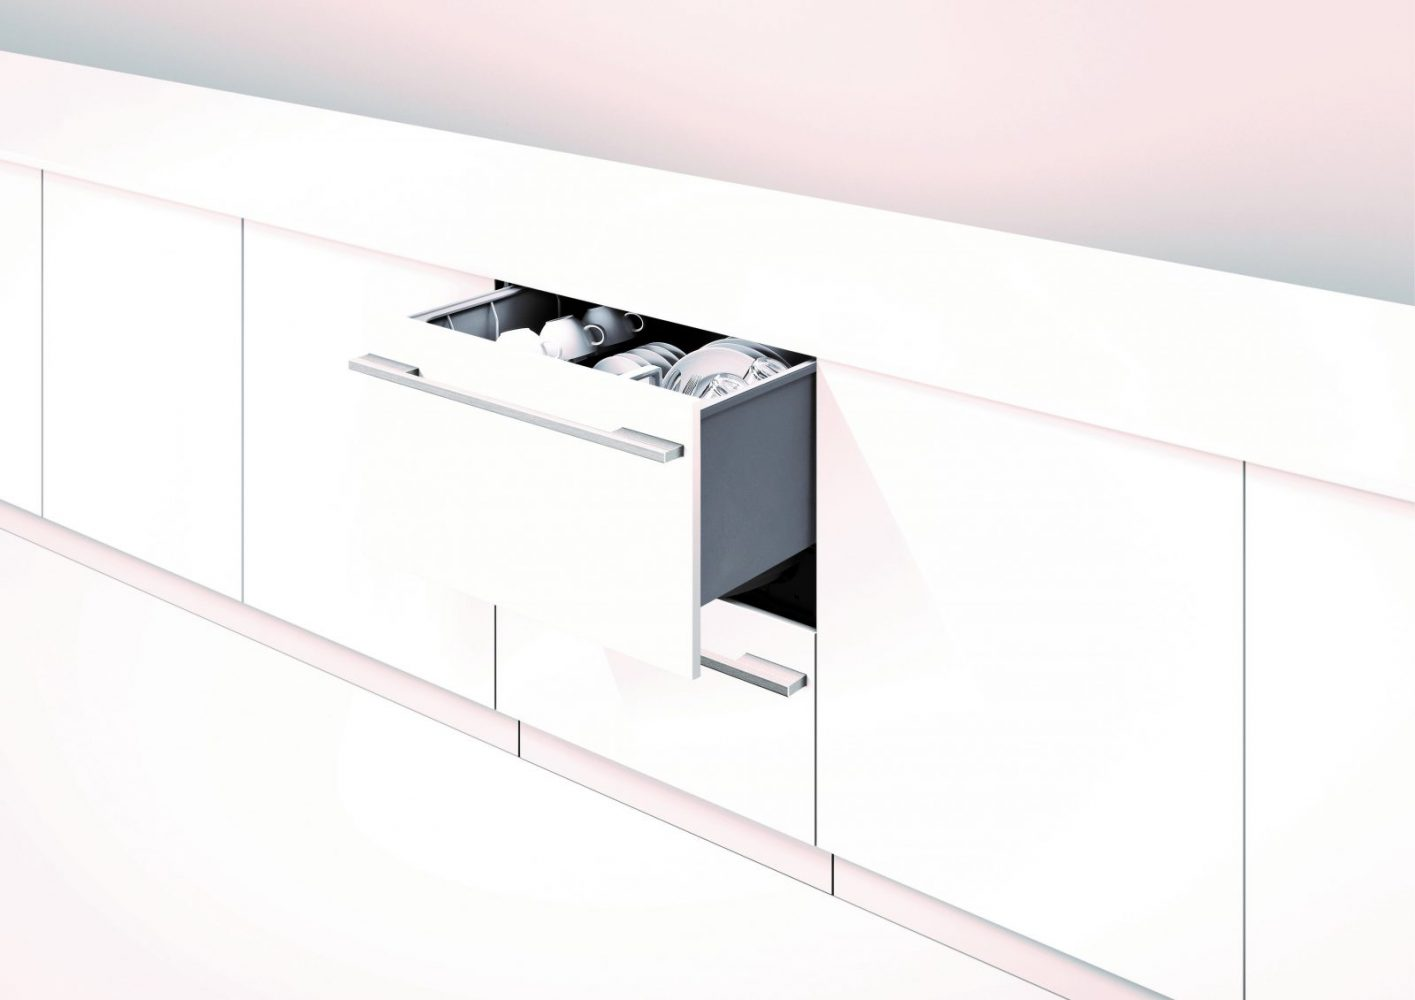 Kitchens & Kitchen appliances by Linde agenturen - 9